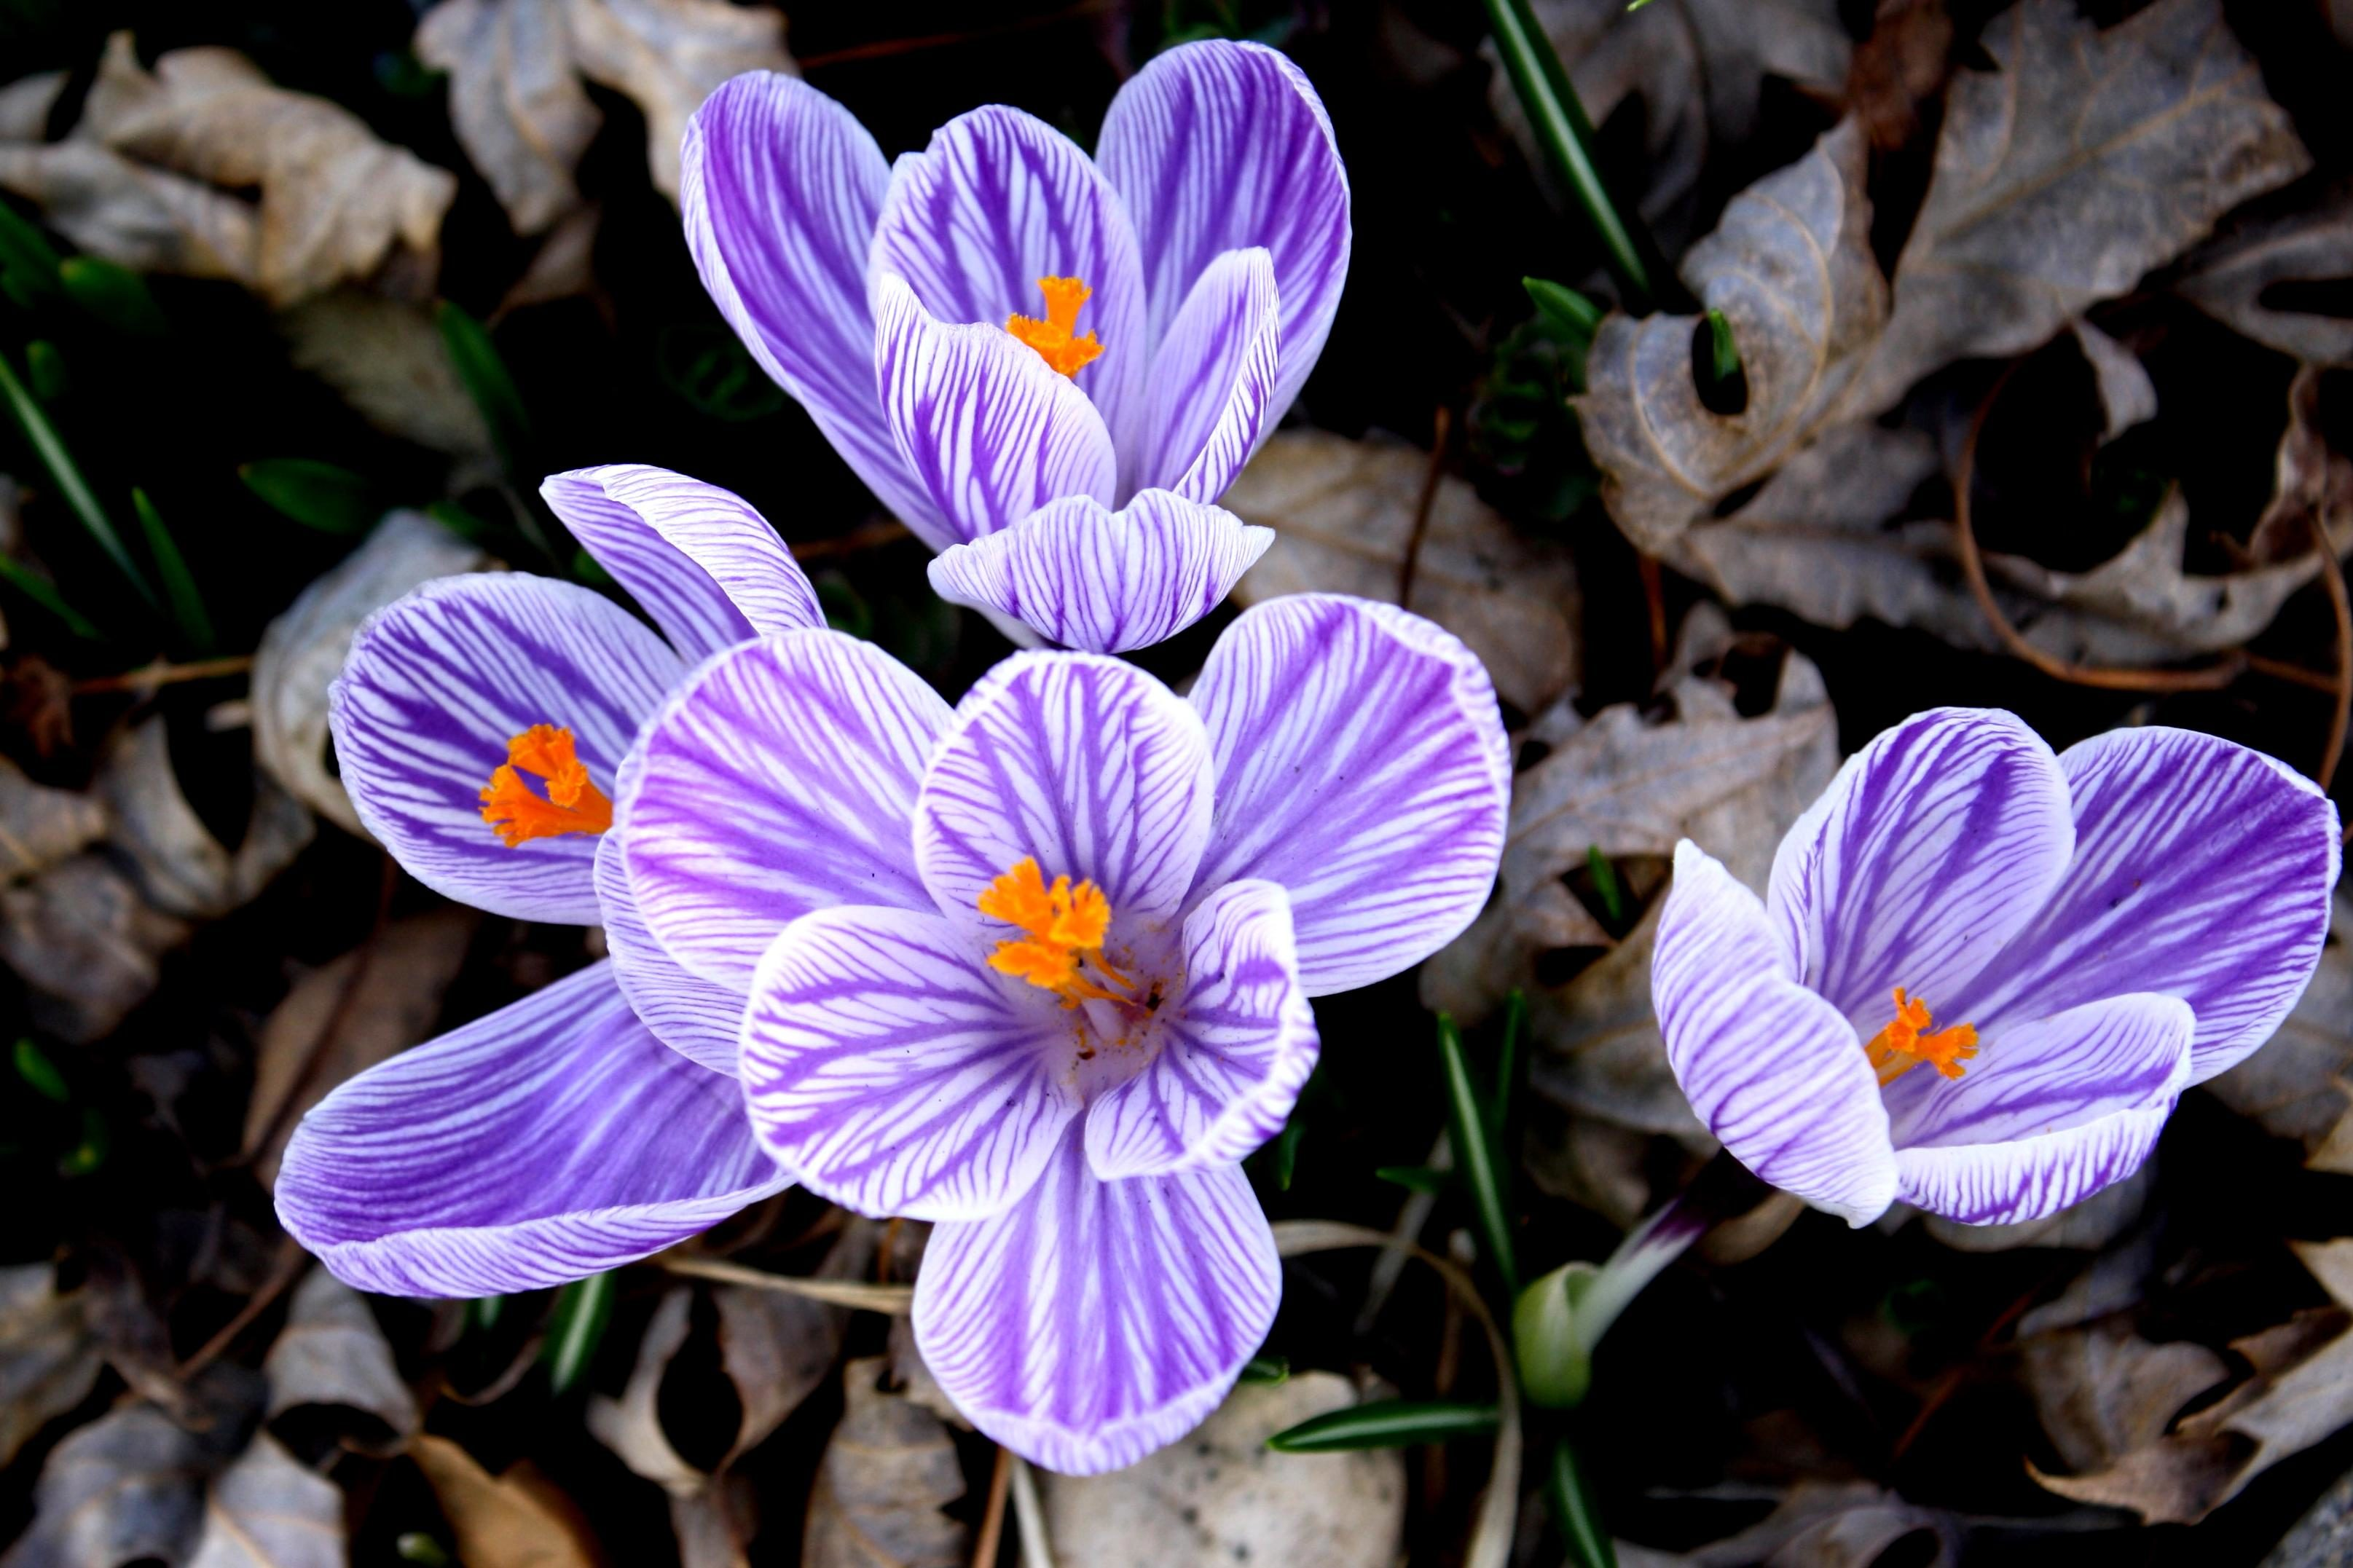 Free picture crocus flower purple white striped petals pistil crocus flower purple white striped petals pistil pollen mightylinksfo